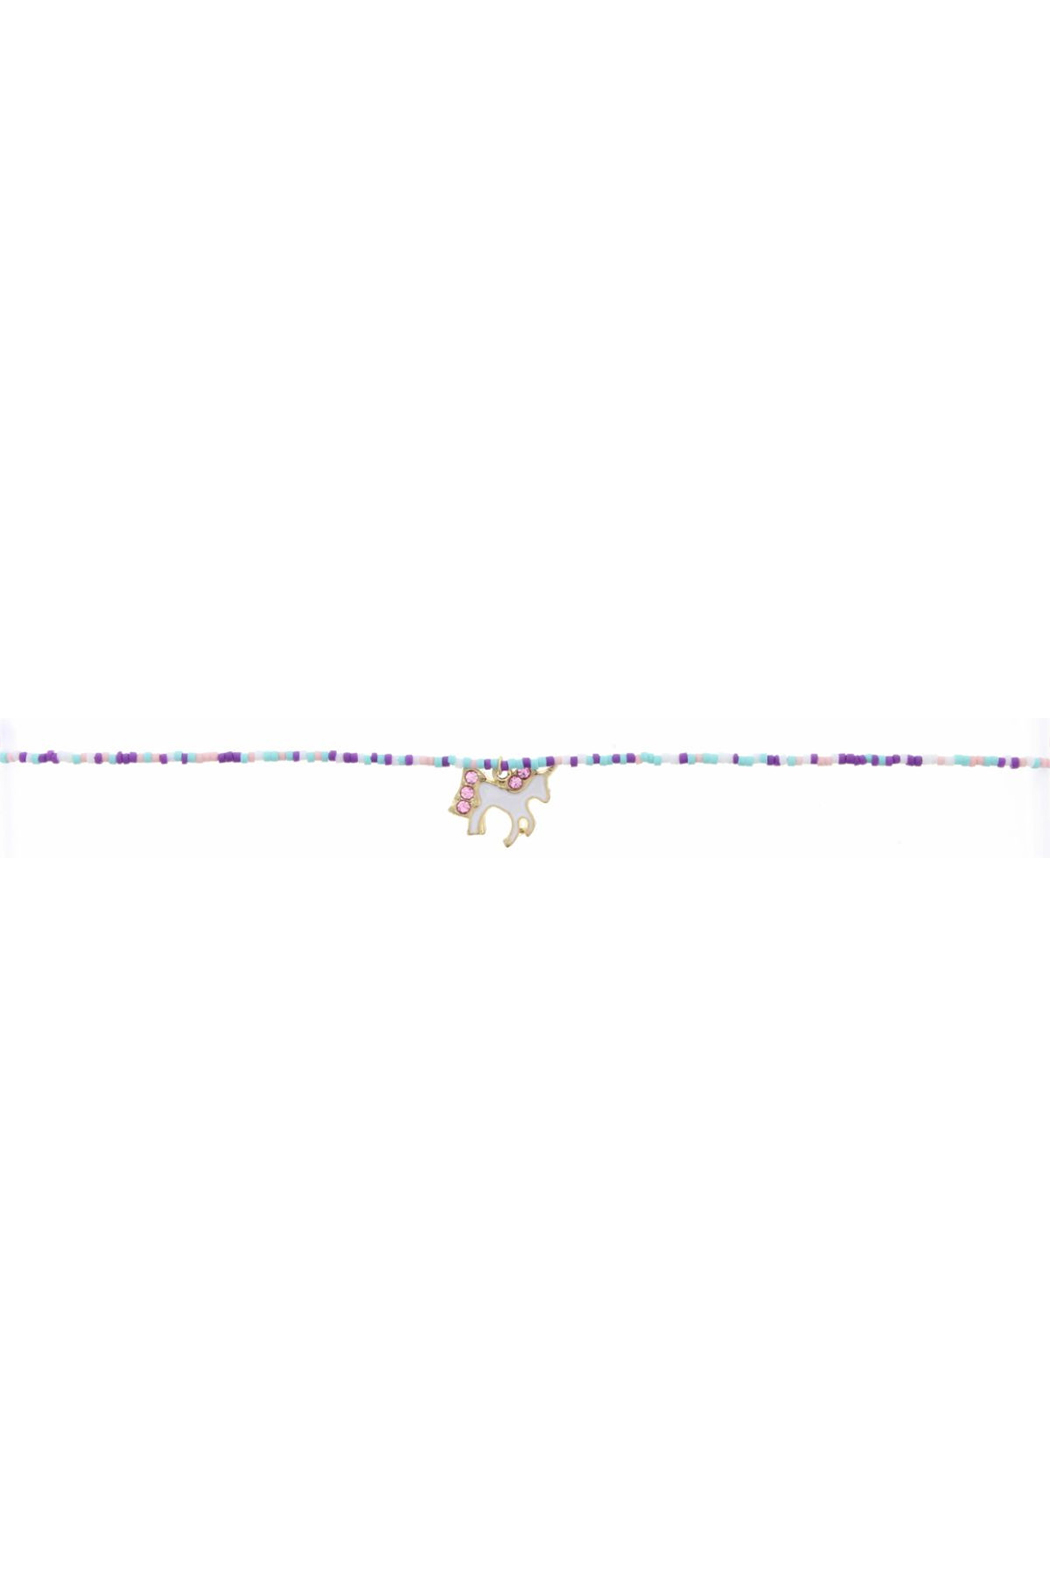 Jane Marie Seed Bead Necklace - Pink/Whit/Mint With Unicorn Charm - Main Image